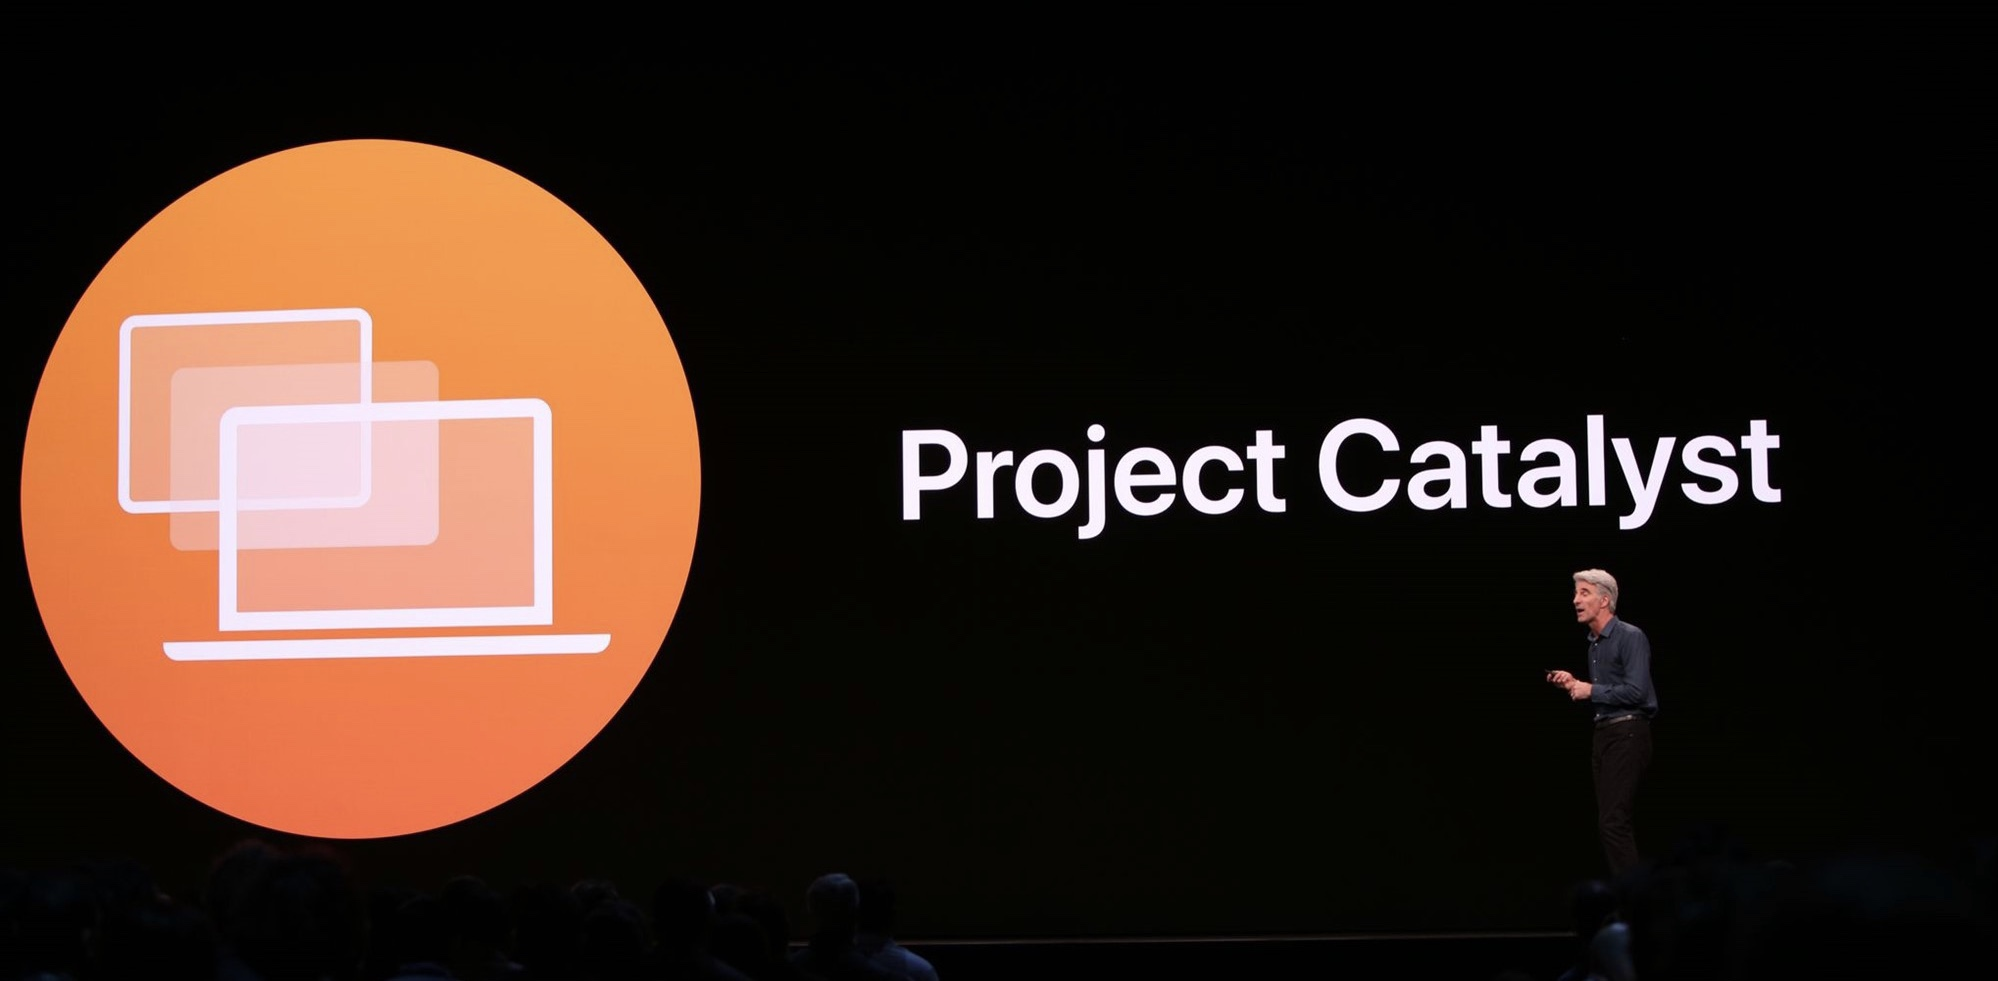 Project Catalyst makes it simple for iOS apps to be ported to Mac with very little coding required